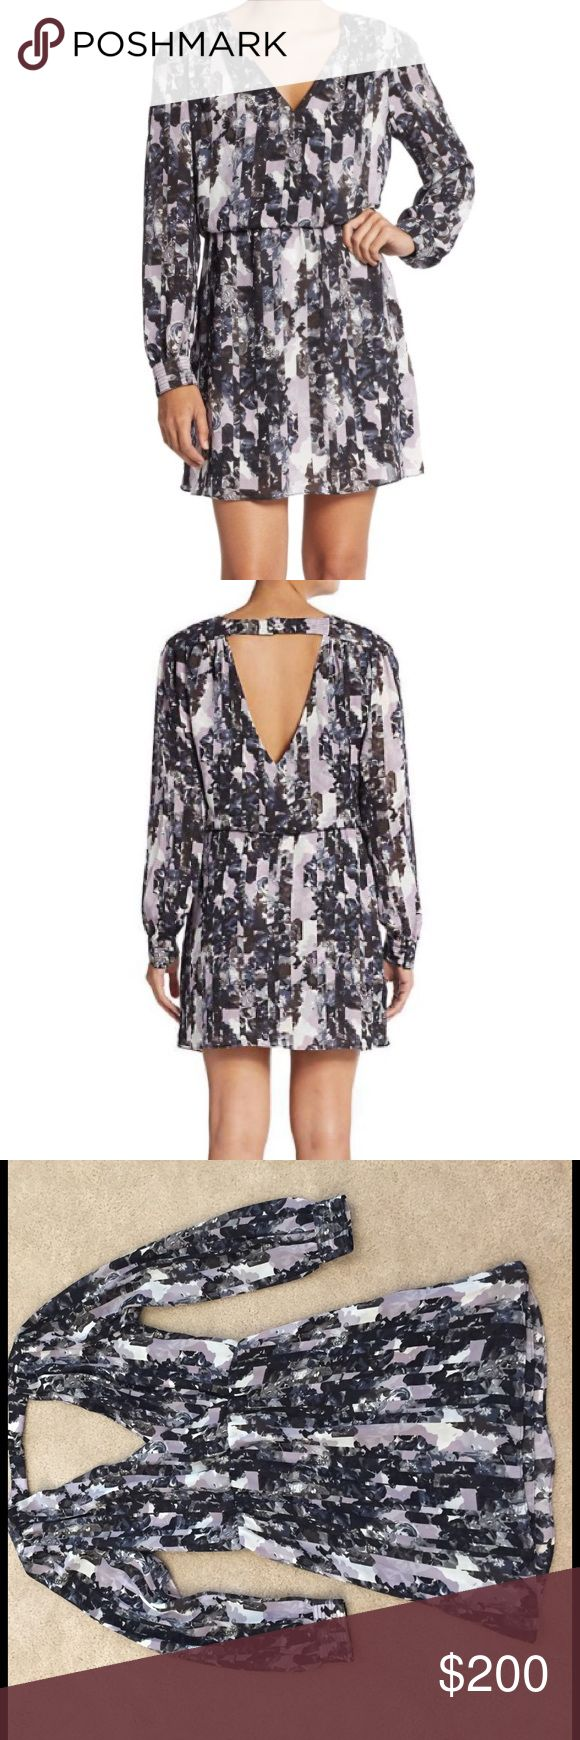 NWT Parker Lila Faux Wrap Dress NWT. 100% polyester. The bottom portion/skirt is lined. Open back with closure at the top (see picture). Just an absolutely beautiful dress. The cuffs on the sleeves button. Lavender floral print. Elastic waistband. **Sold Out online! Parker Dresses Mini